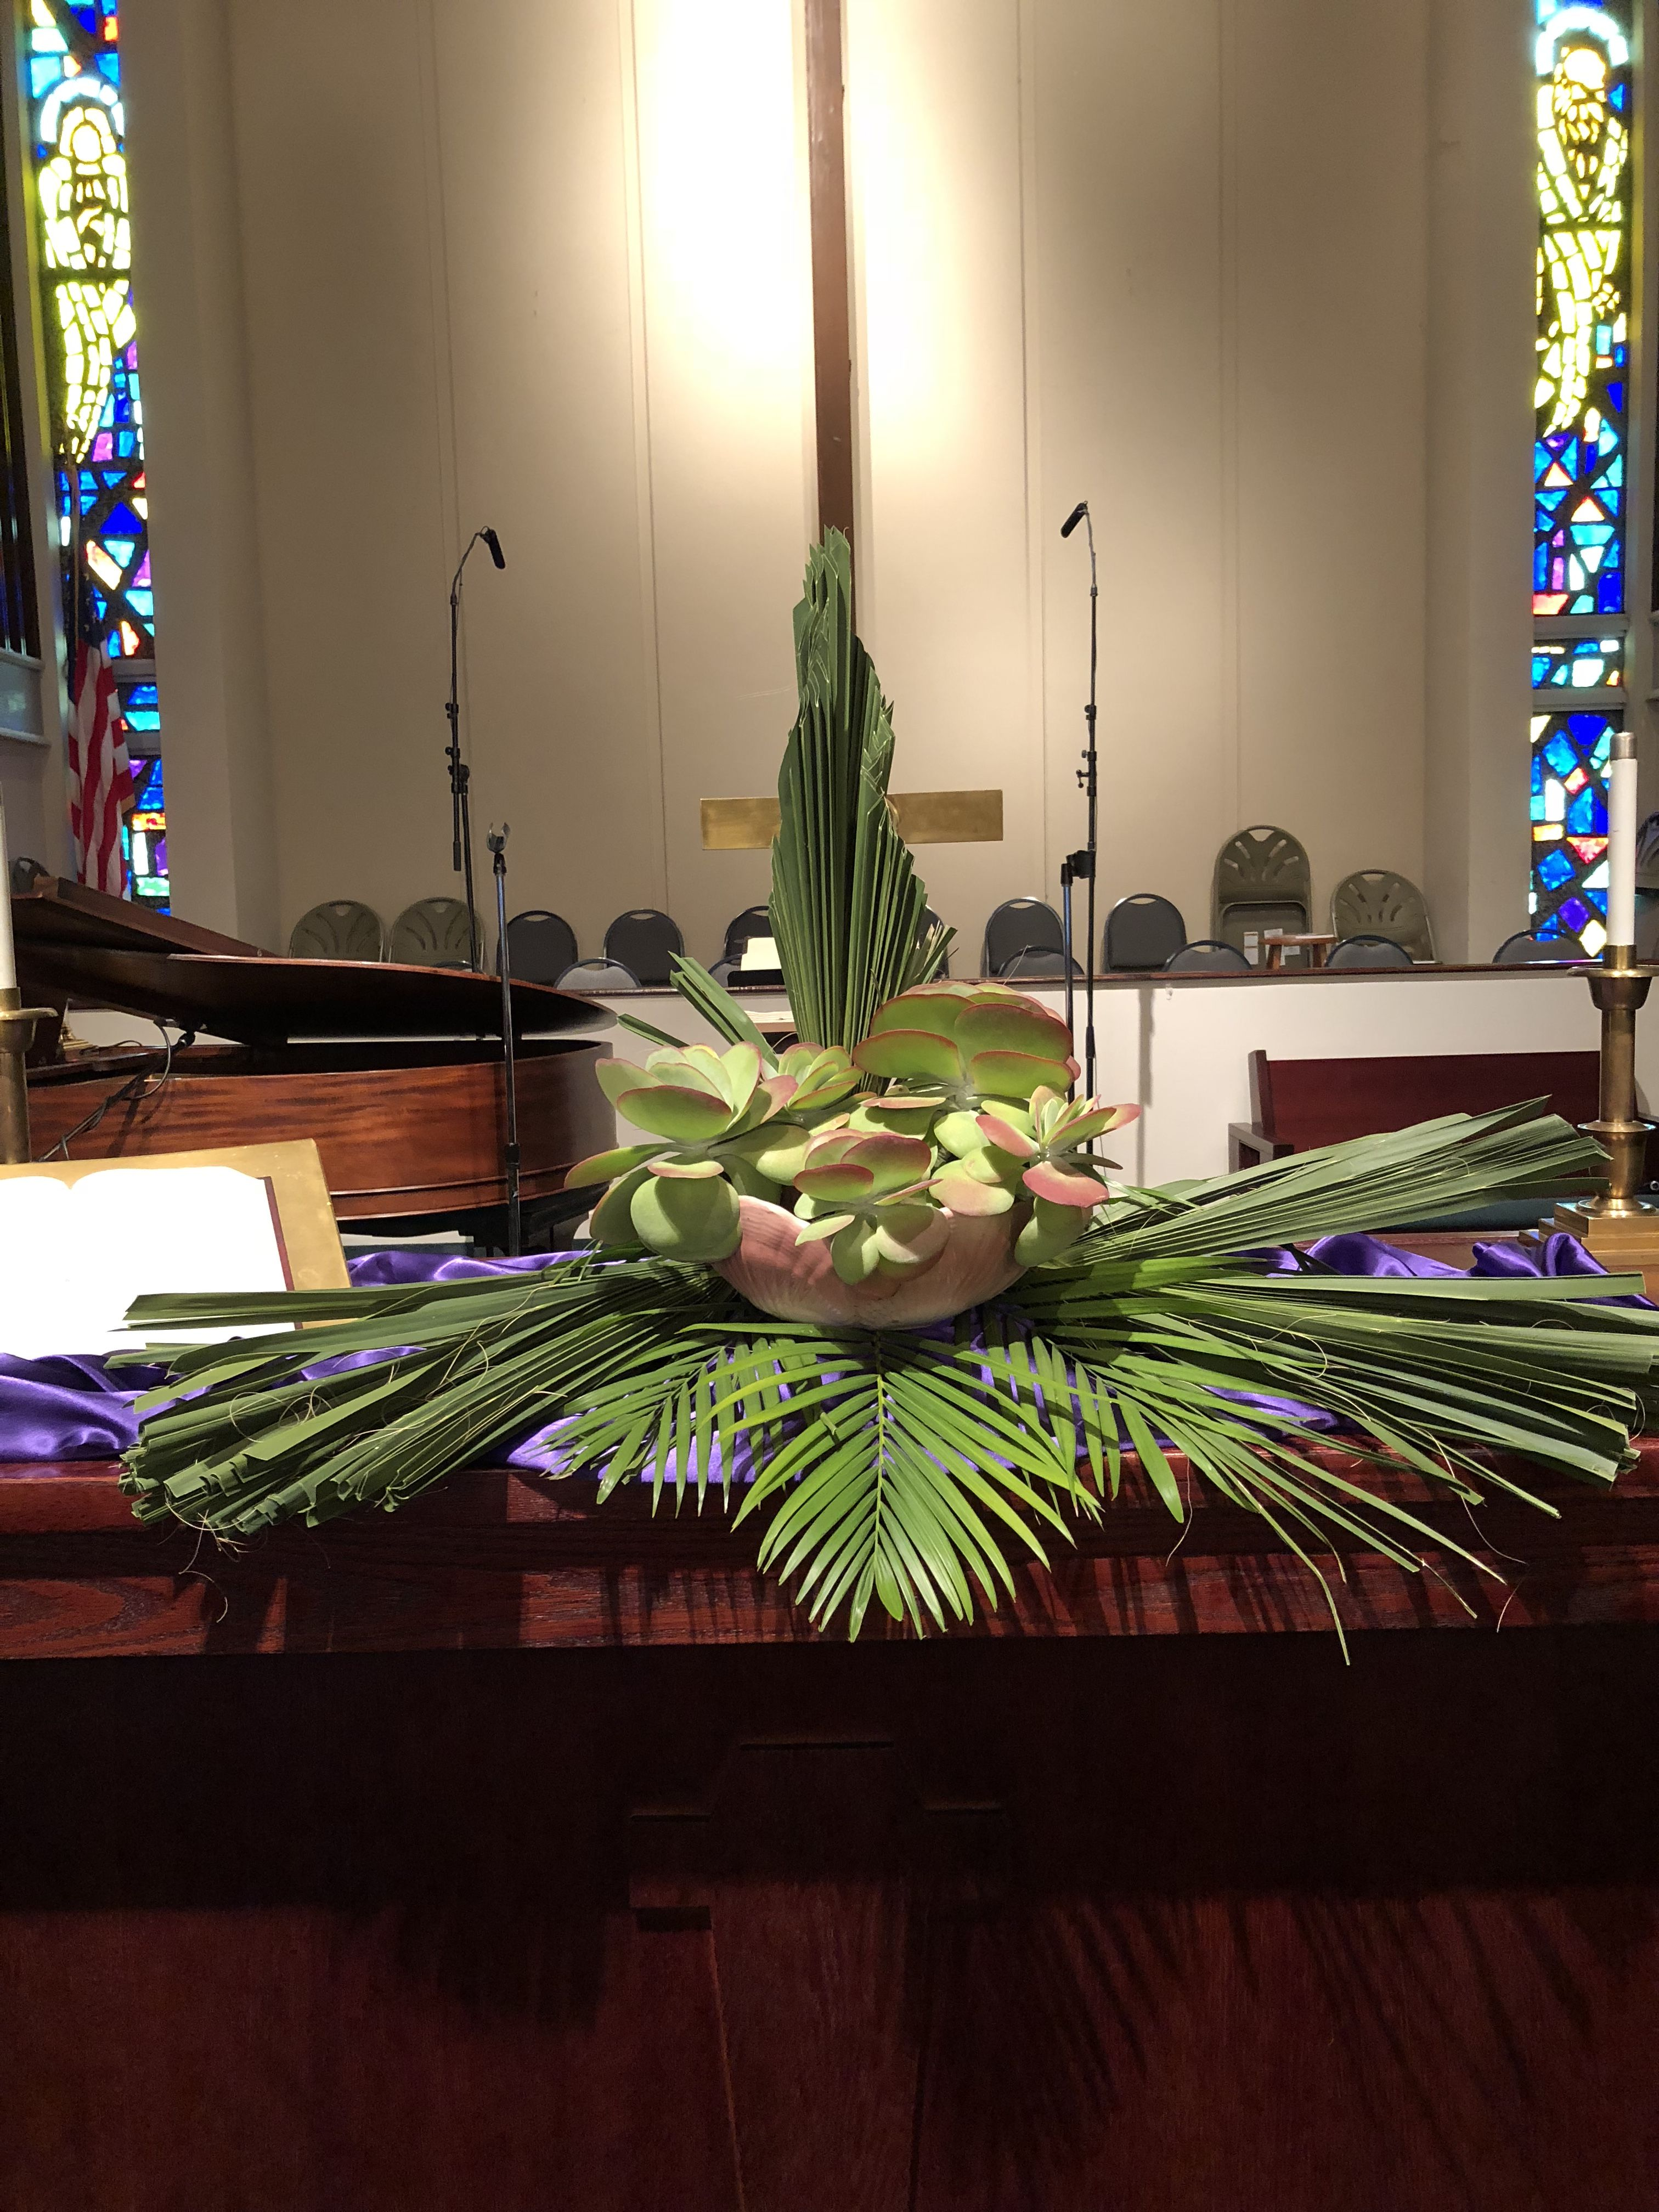 Altarscape For Palm Sunday At Fumc Of Pahokee Fl Arrangement By Sandra Jarriel